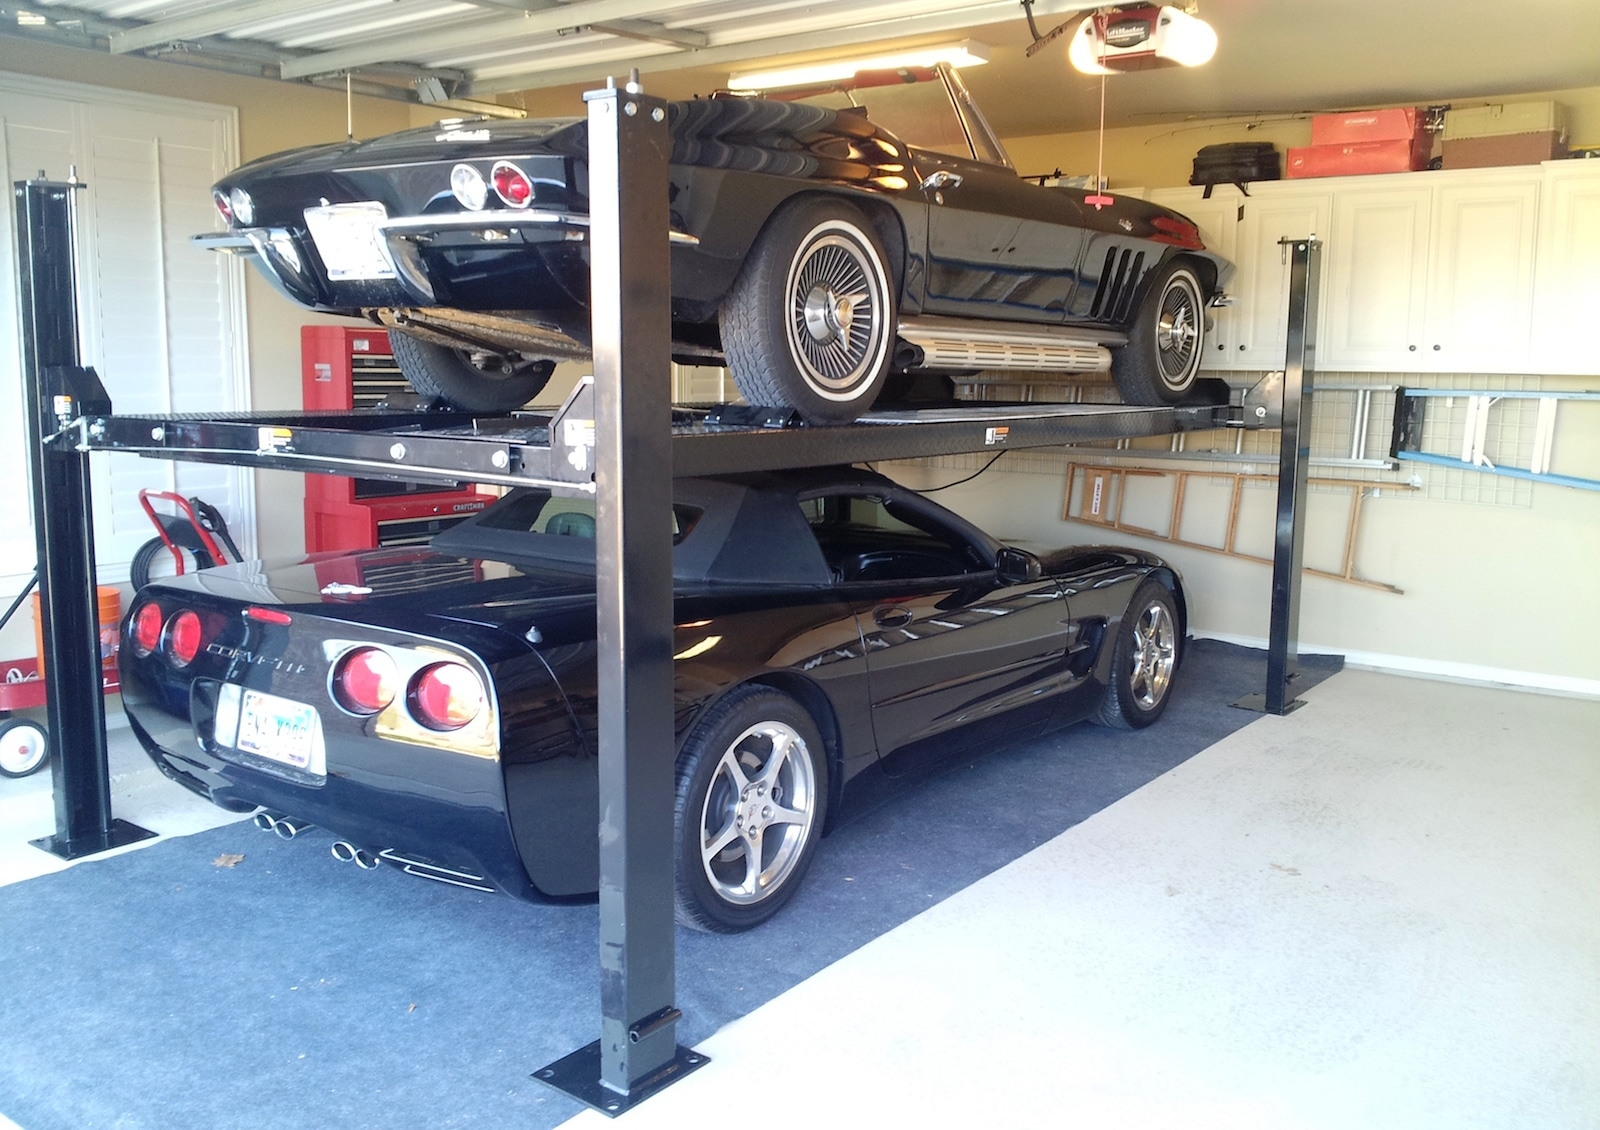 The Best Car Lift For Your Home Garage 2 4 Post Lifts